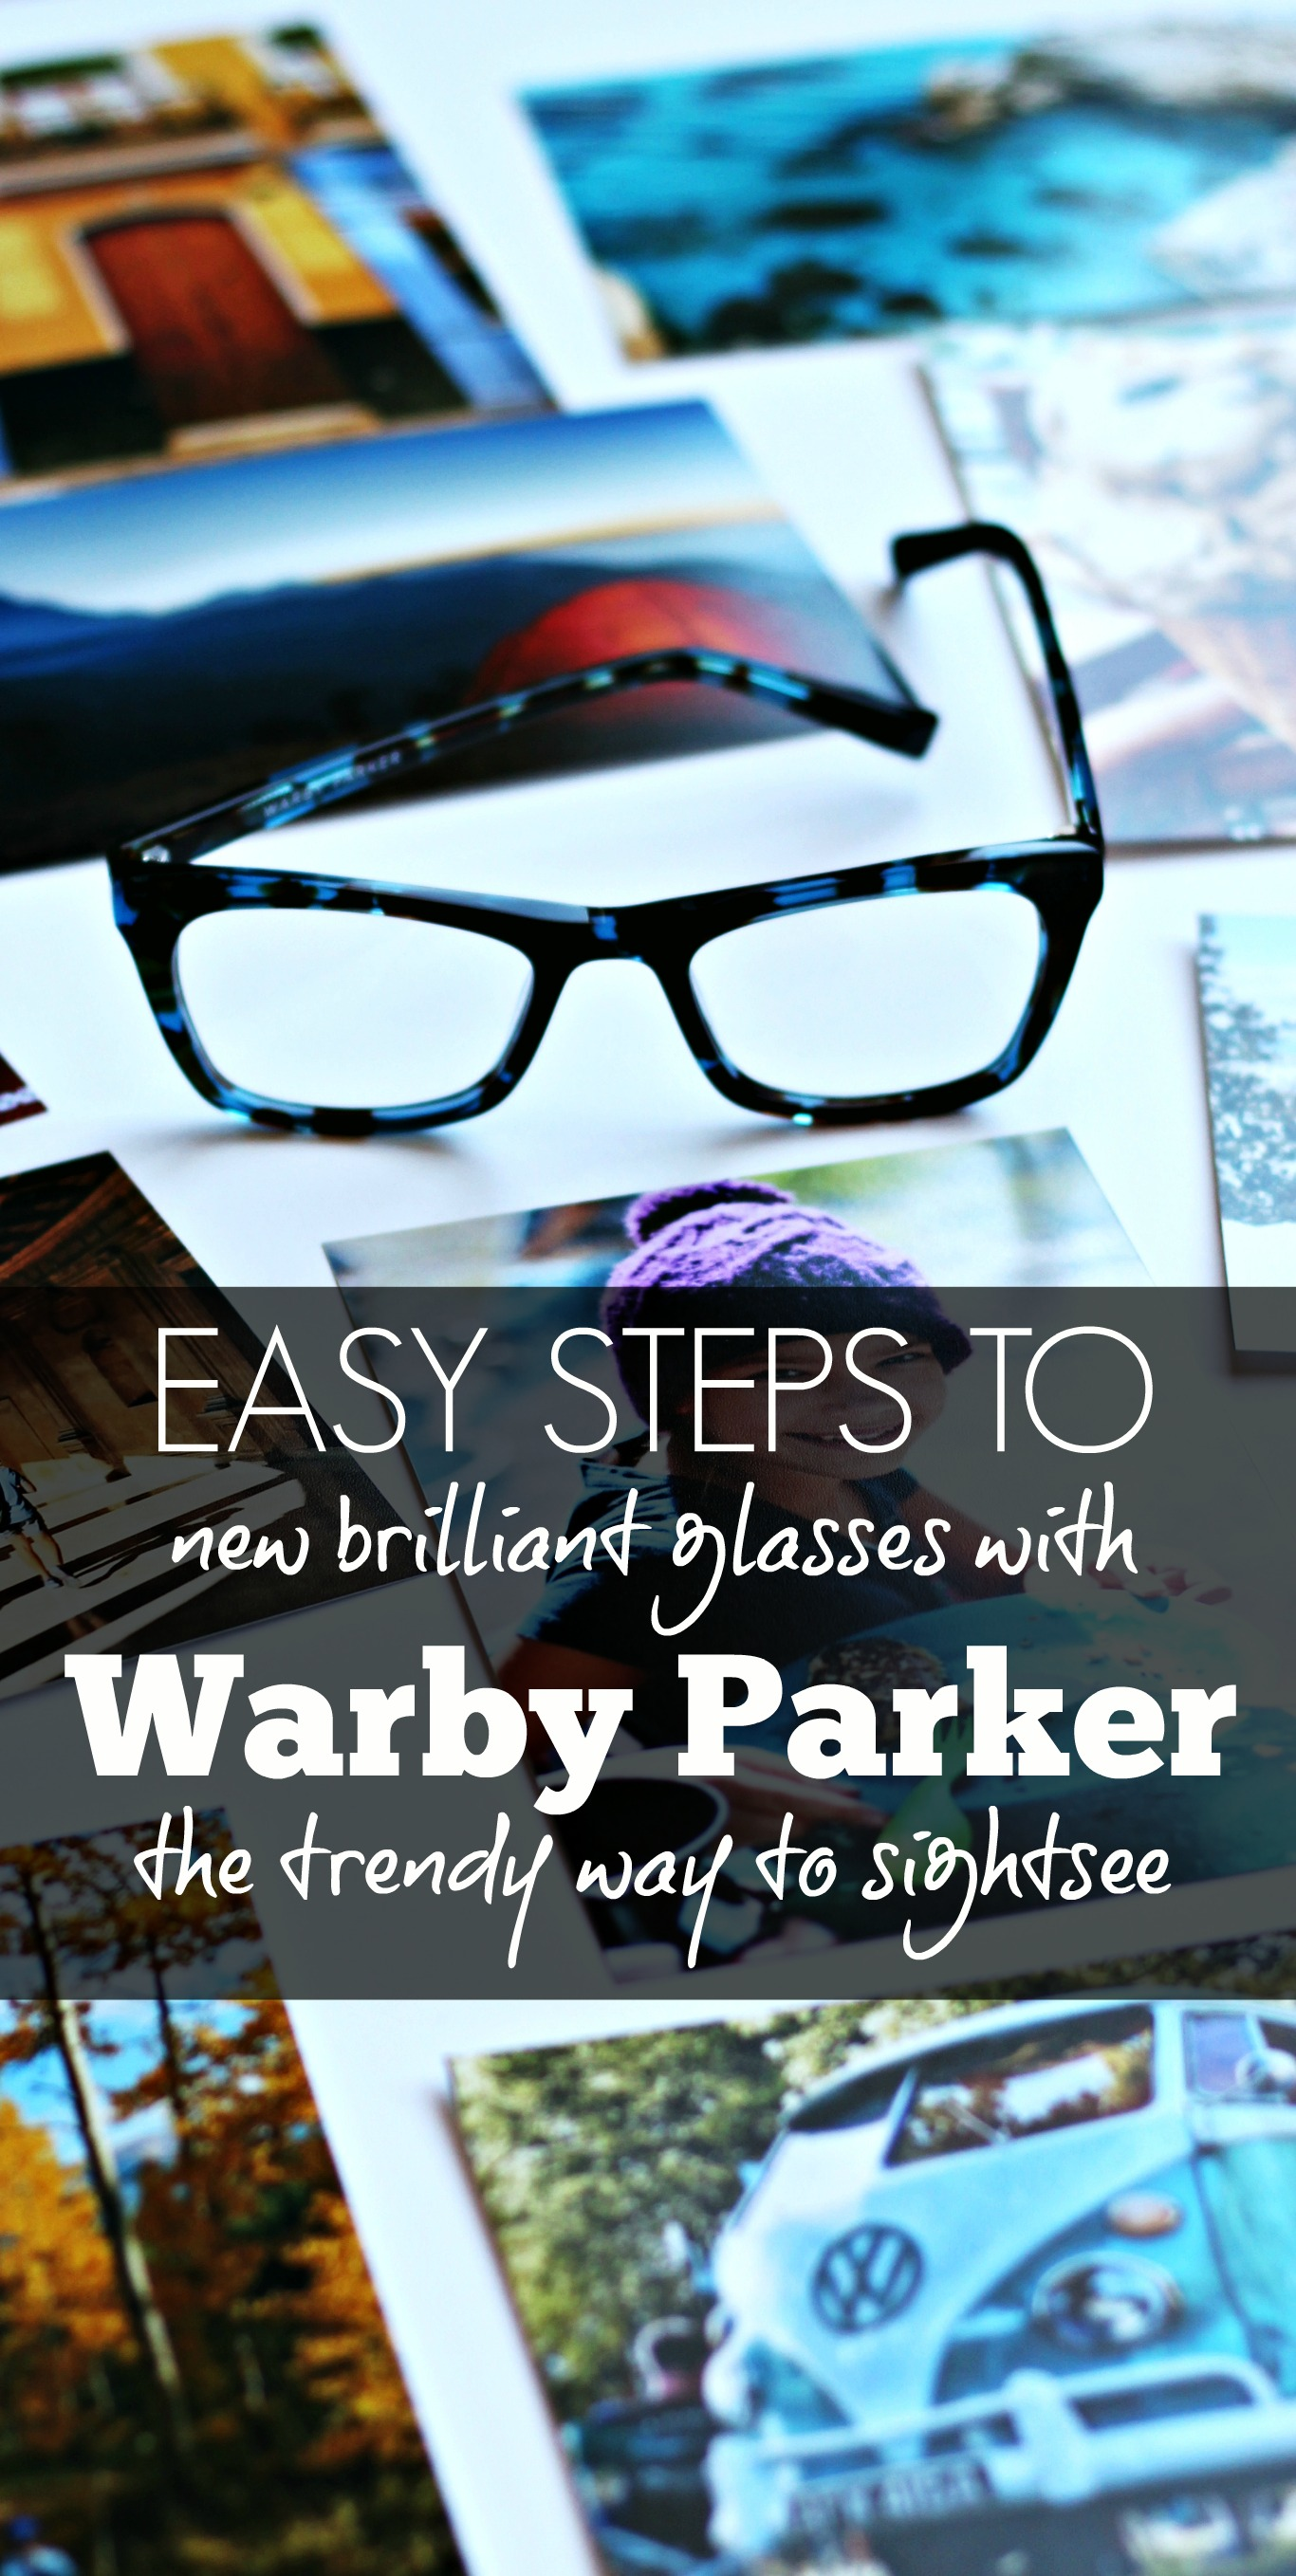 home-try-on-prescription-eyeglasses-warby-parker